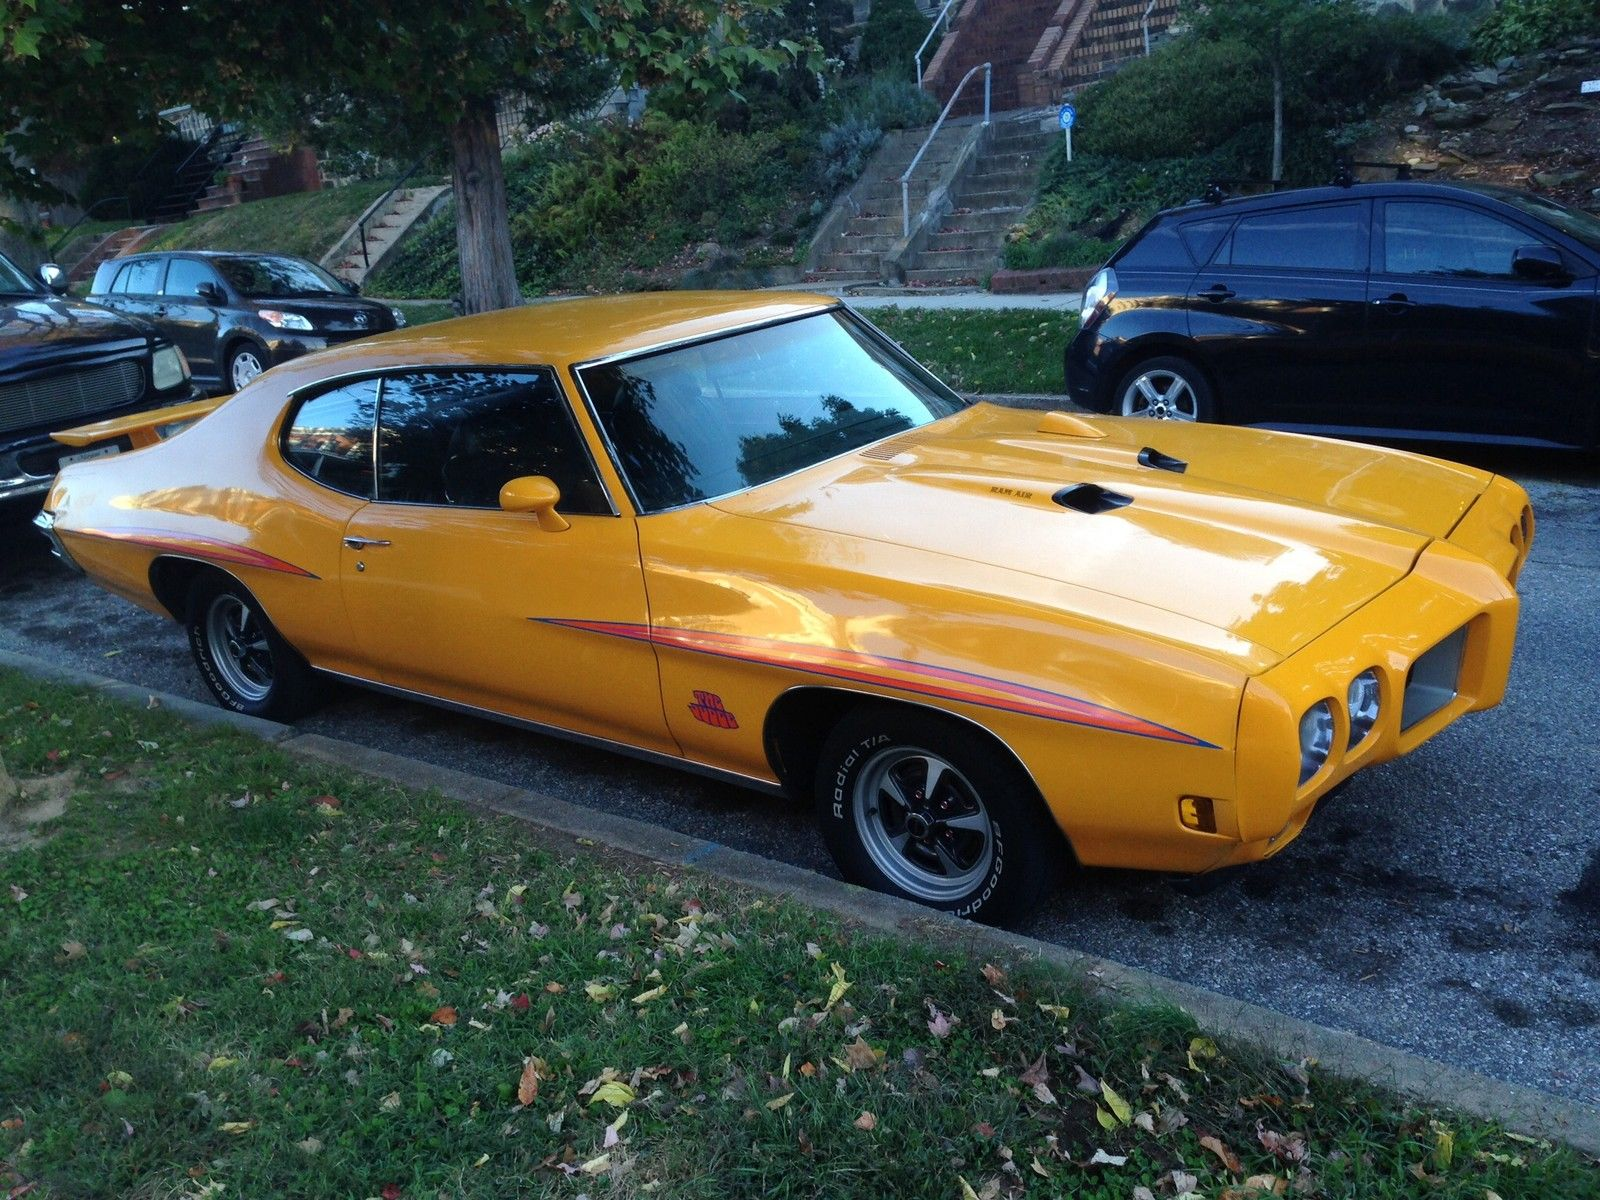 1970 pontiac gto judge tribute true gto for sale in baltimore maryland united states. Black Bedroom Furniture Sets. Home Design Ideas